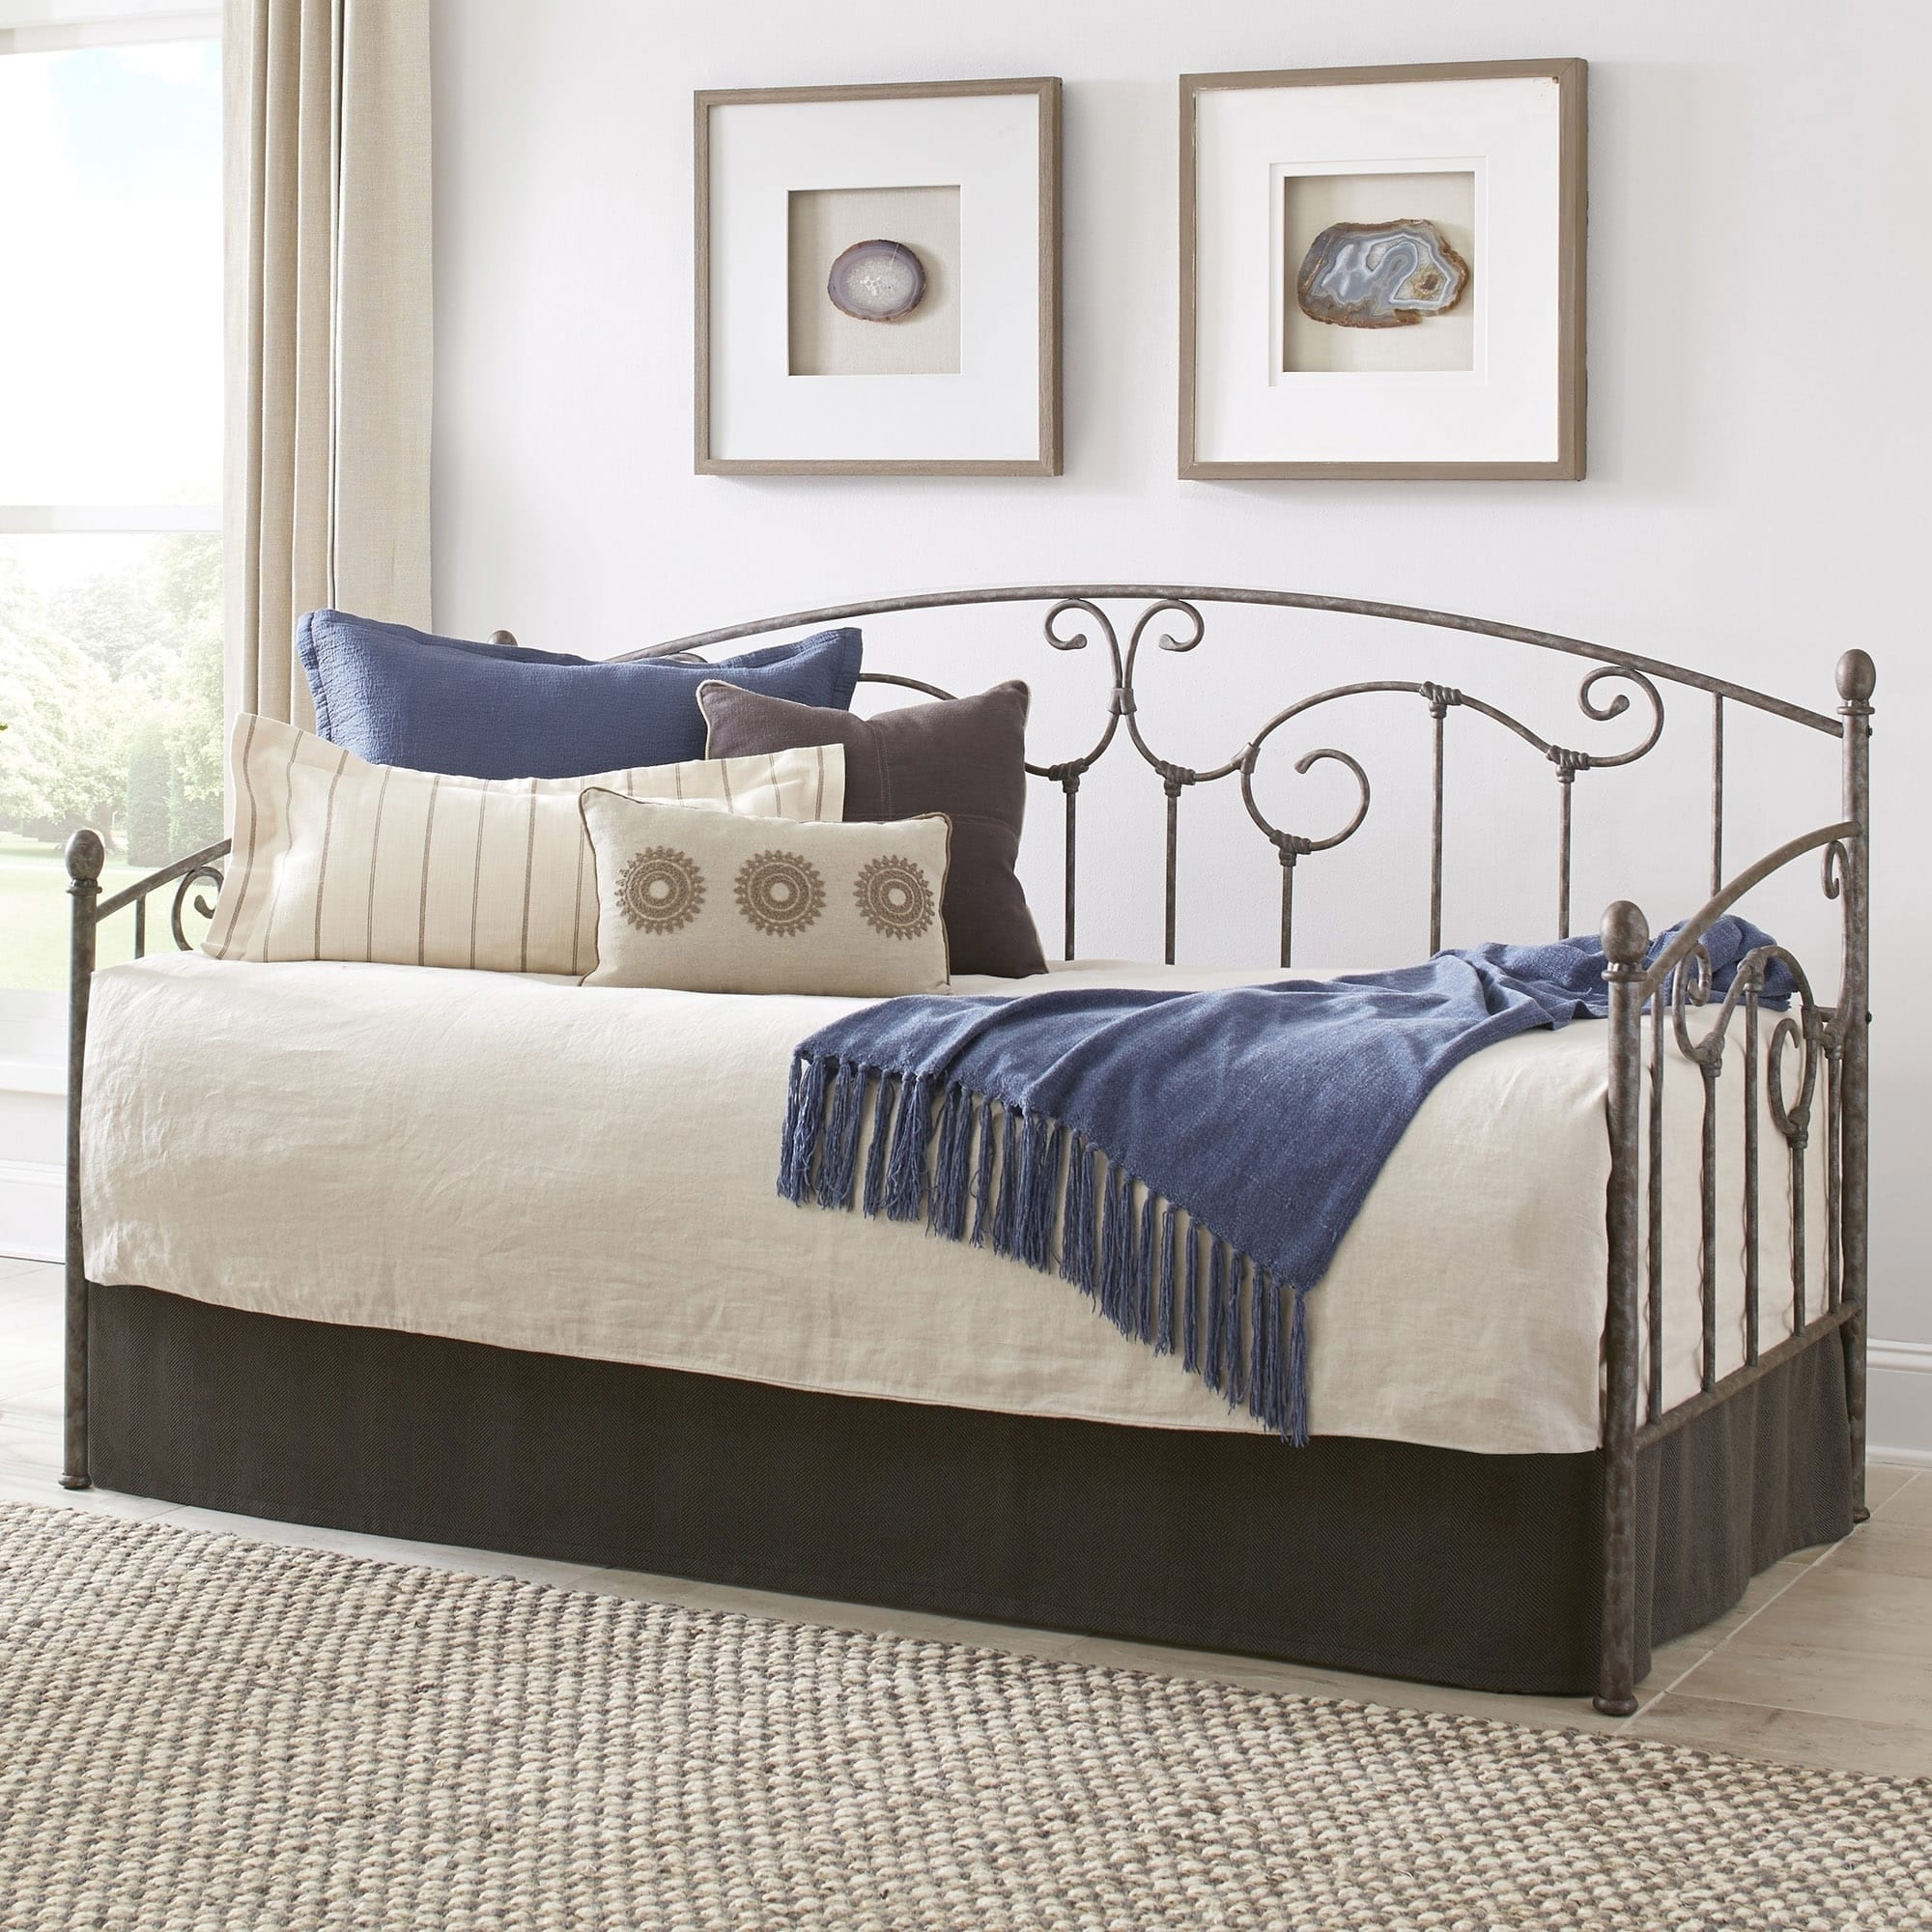 Fashion Bed Group Hinsdale Carbon Steel Daybed With Slopi...